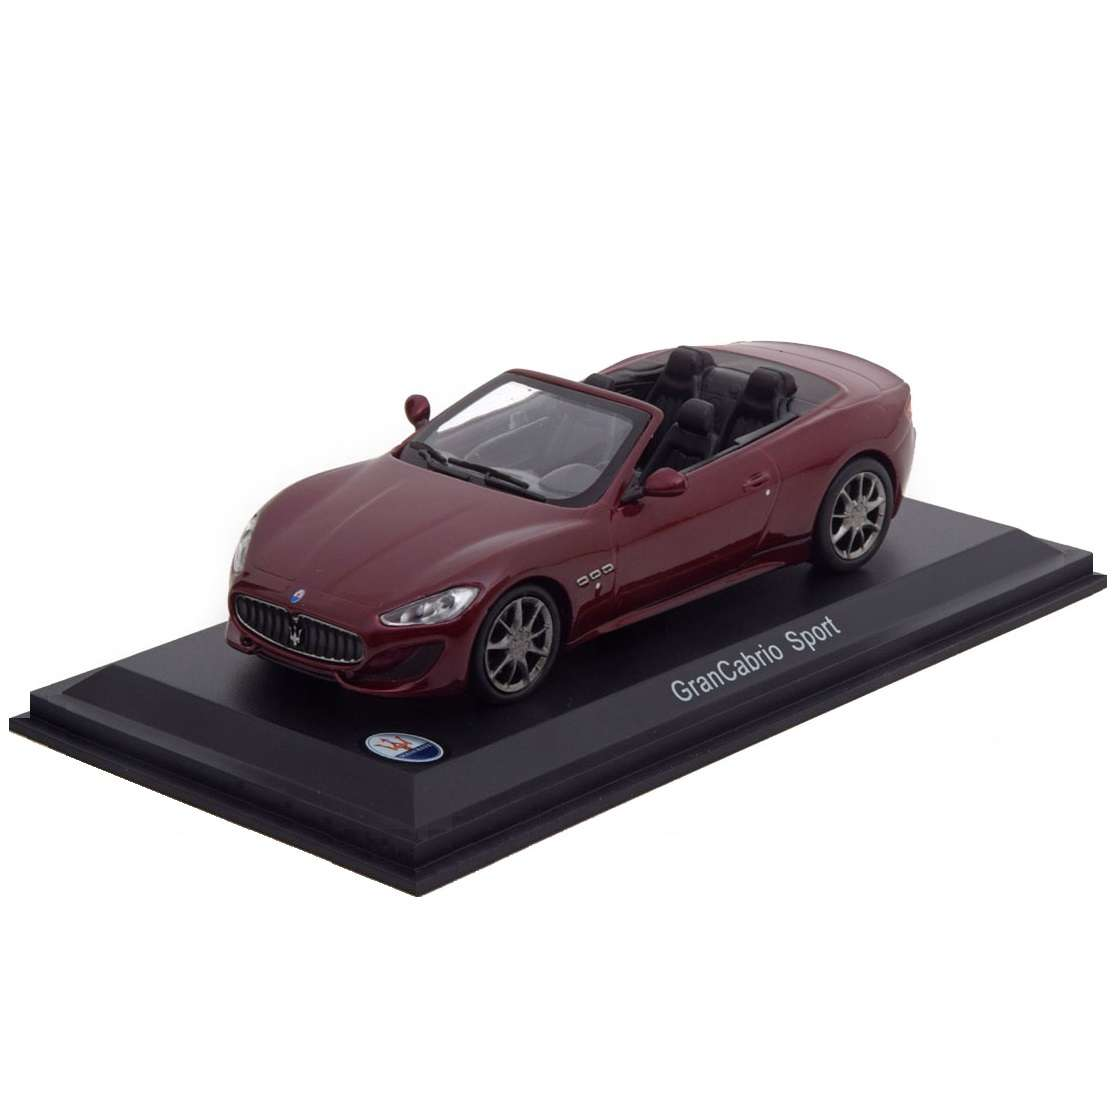 Diecast Car 1/43: Street Cars - Maserati GranCabrio Sport, 2013 Photo